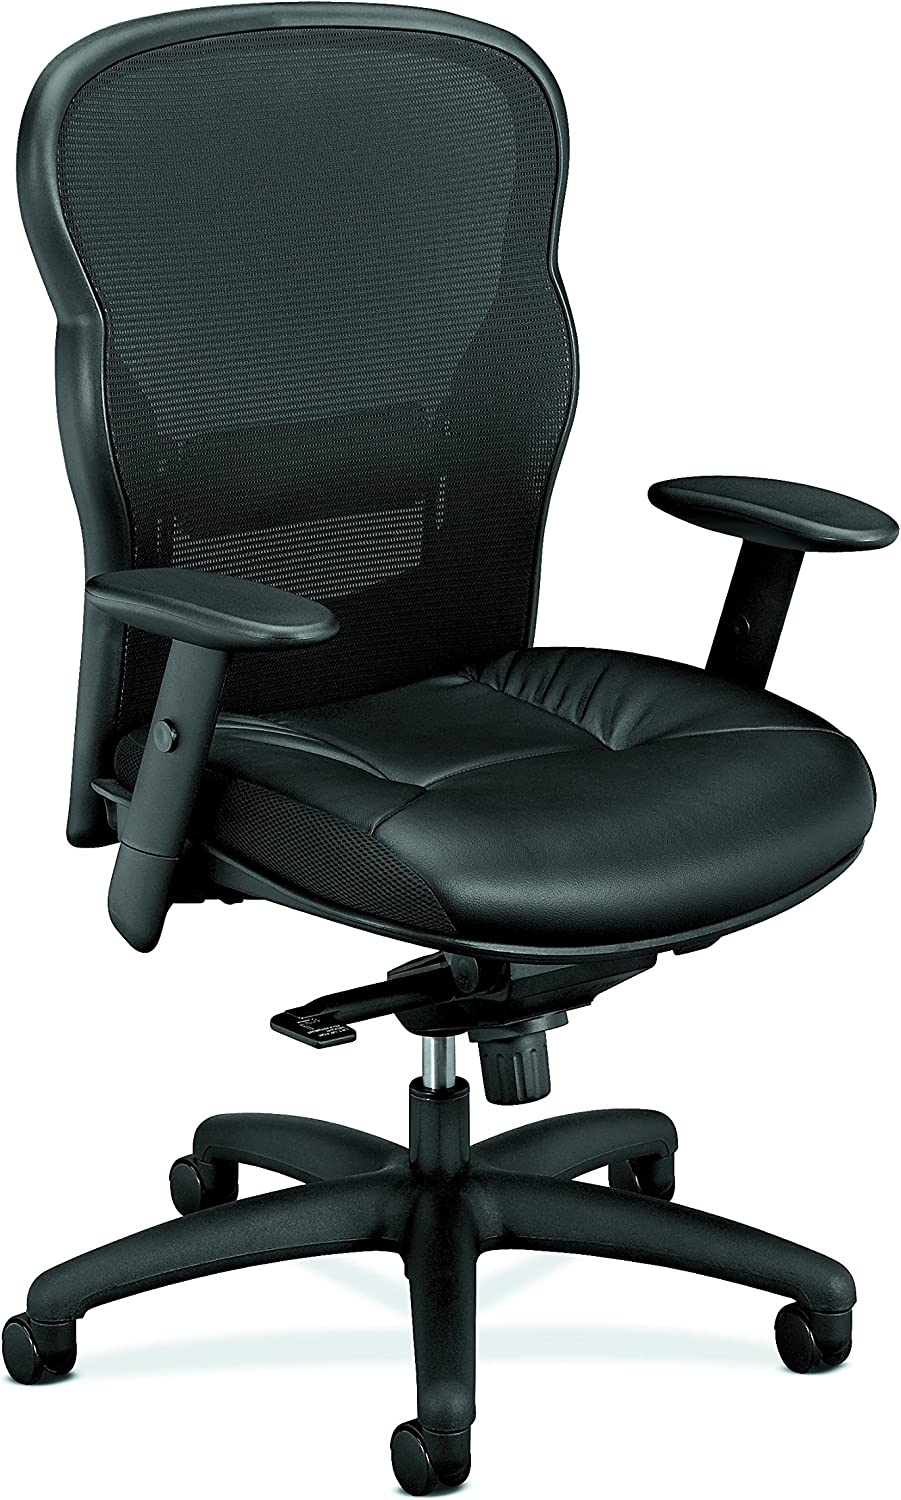 HON Wave Executive Leather Chair - Mesh High-Back Task Chair with Arms, Black (HVL701)